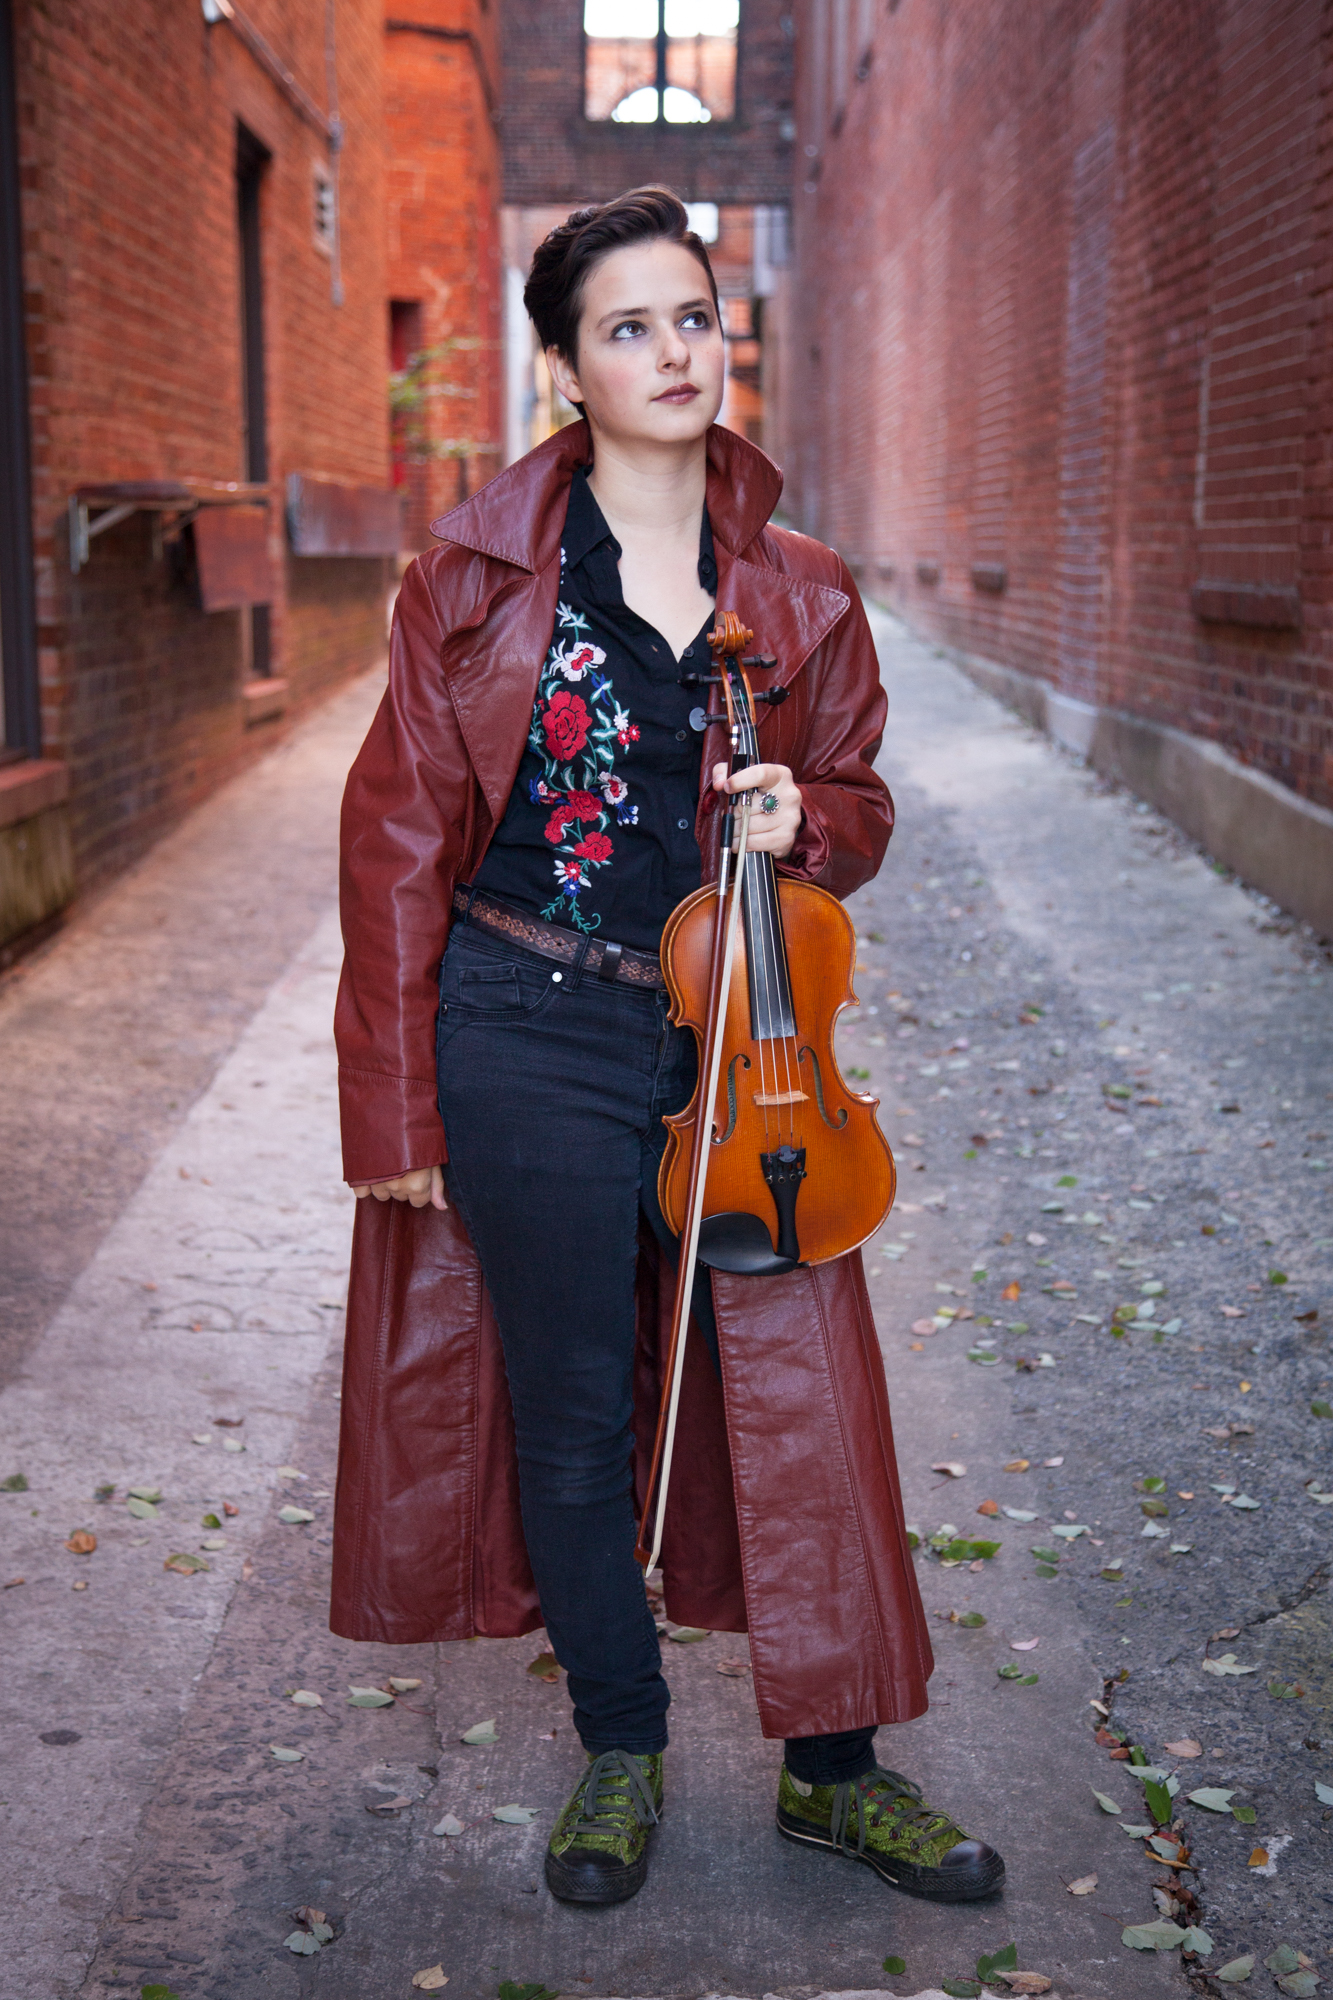 A woman stands in a brick alleyway holding a violin and bow. She is looking at the sky